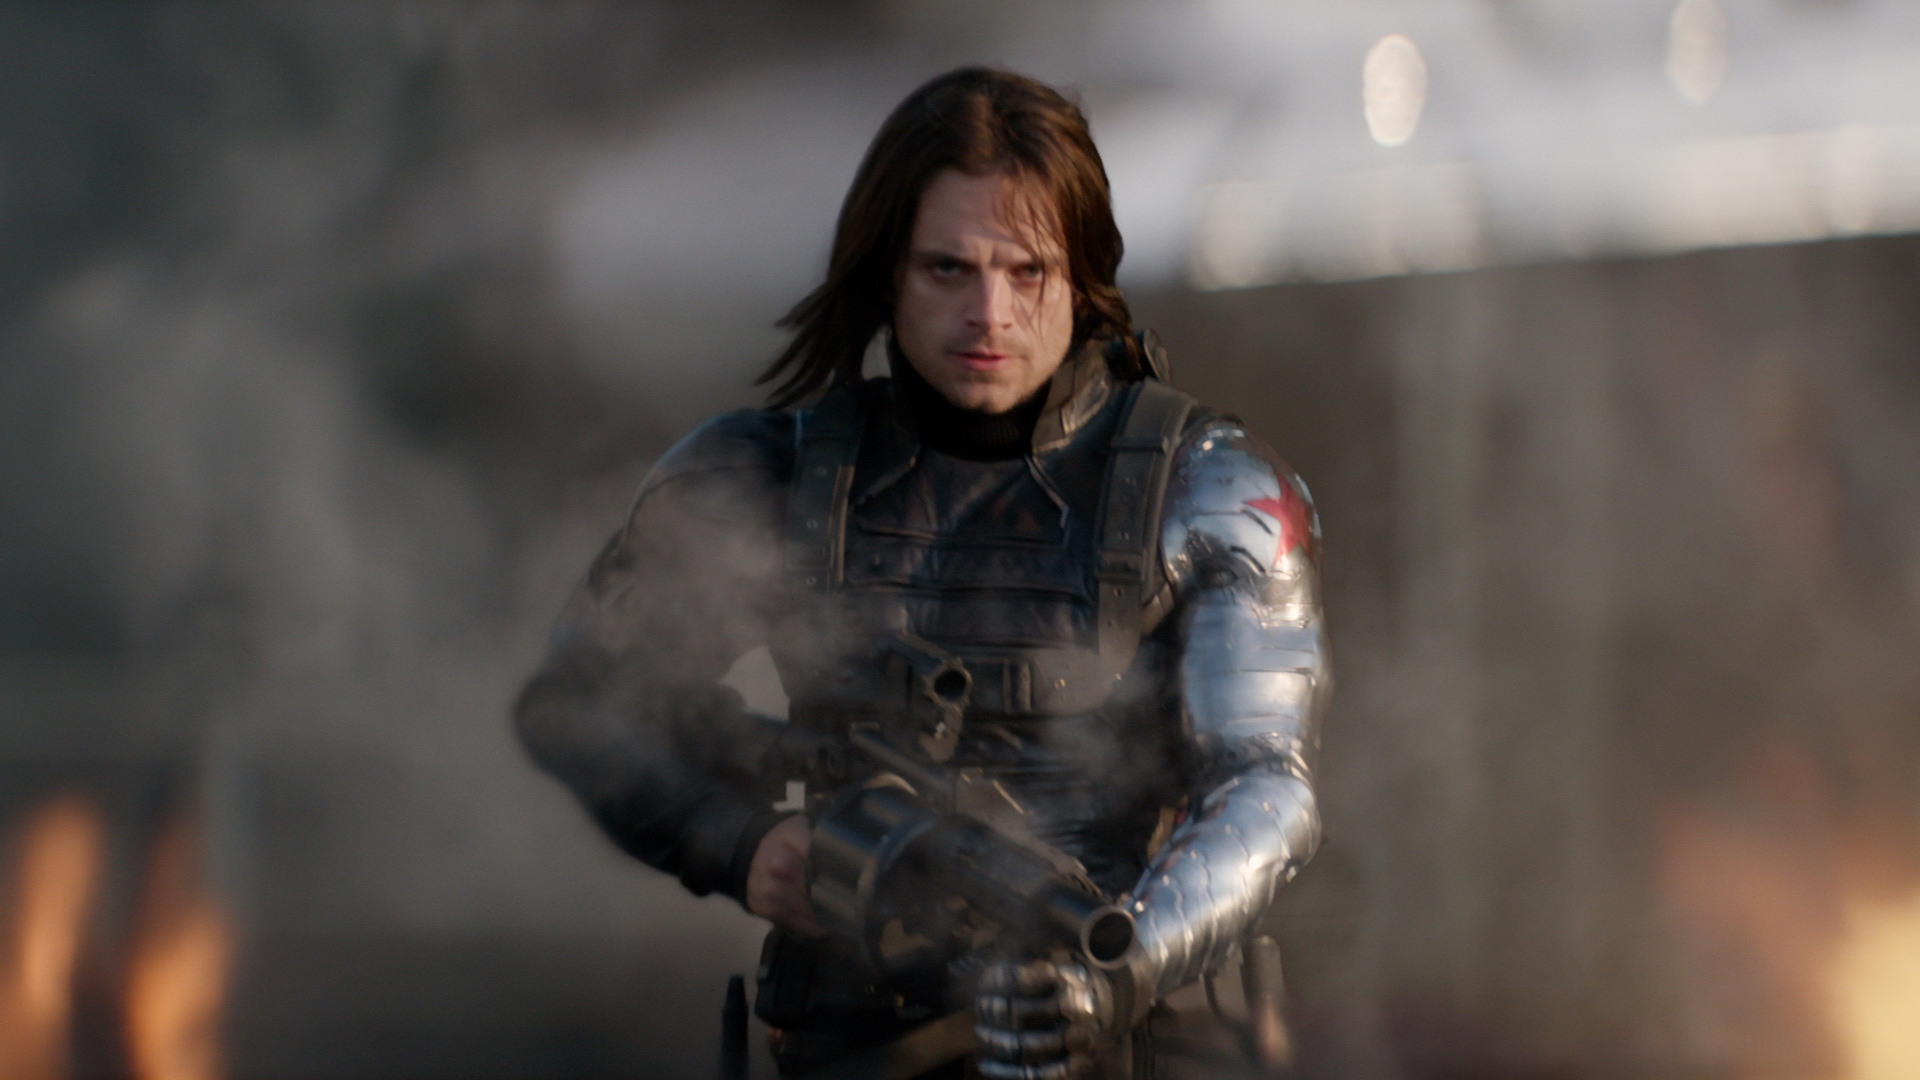 Winter-Soldier-bucky-barnes-winter-soldier-37159123-1920-1080 ...